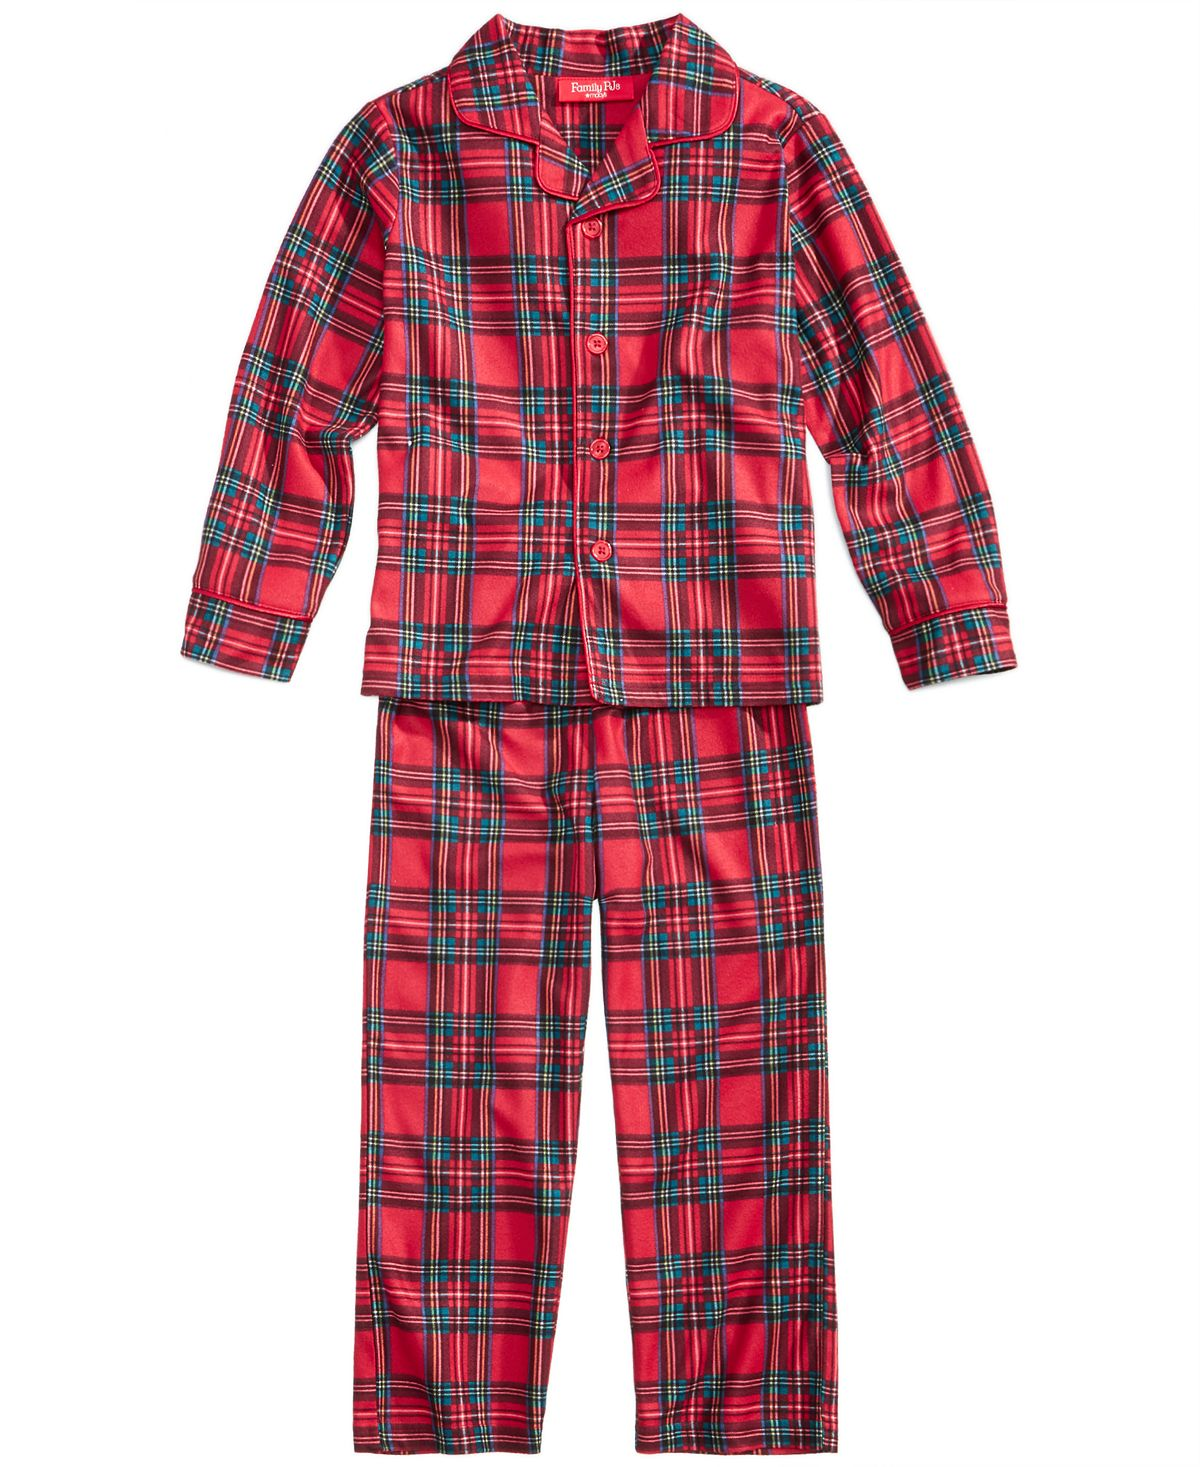 Matching Family Pajamas Kids Brinkley Plaid Pajama Set